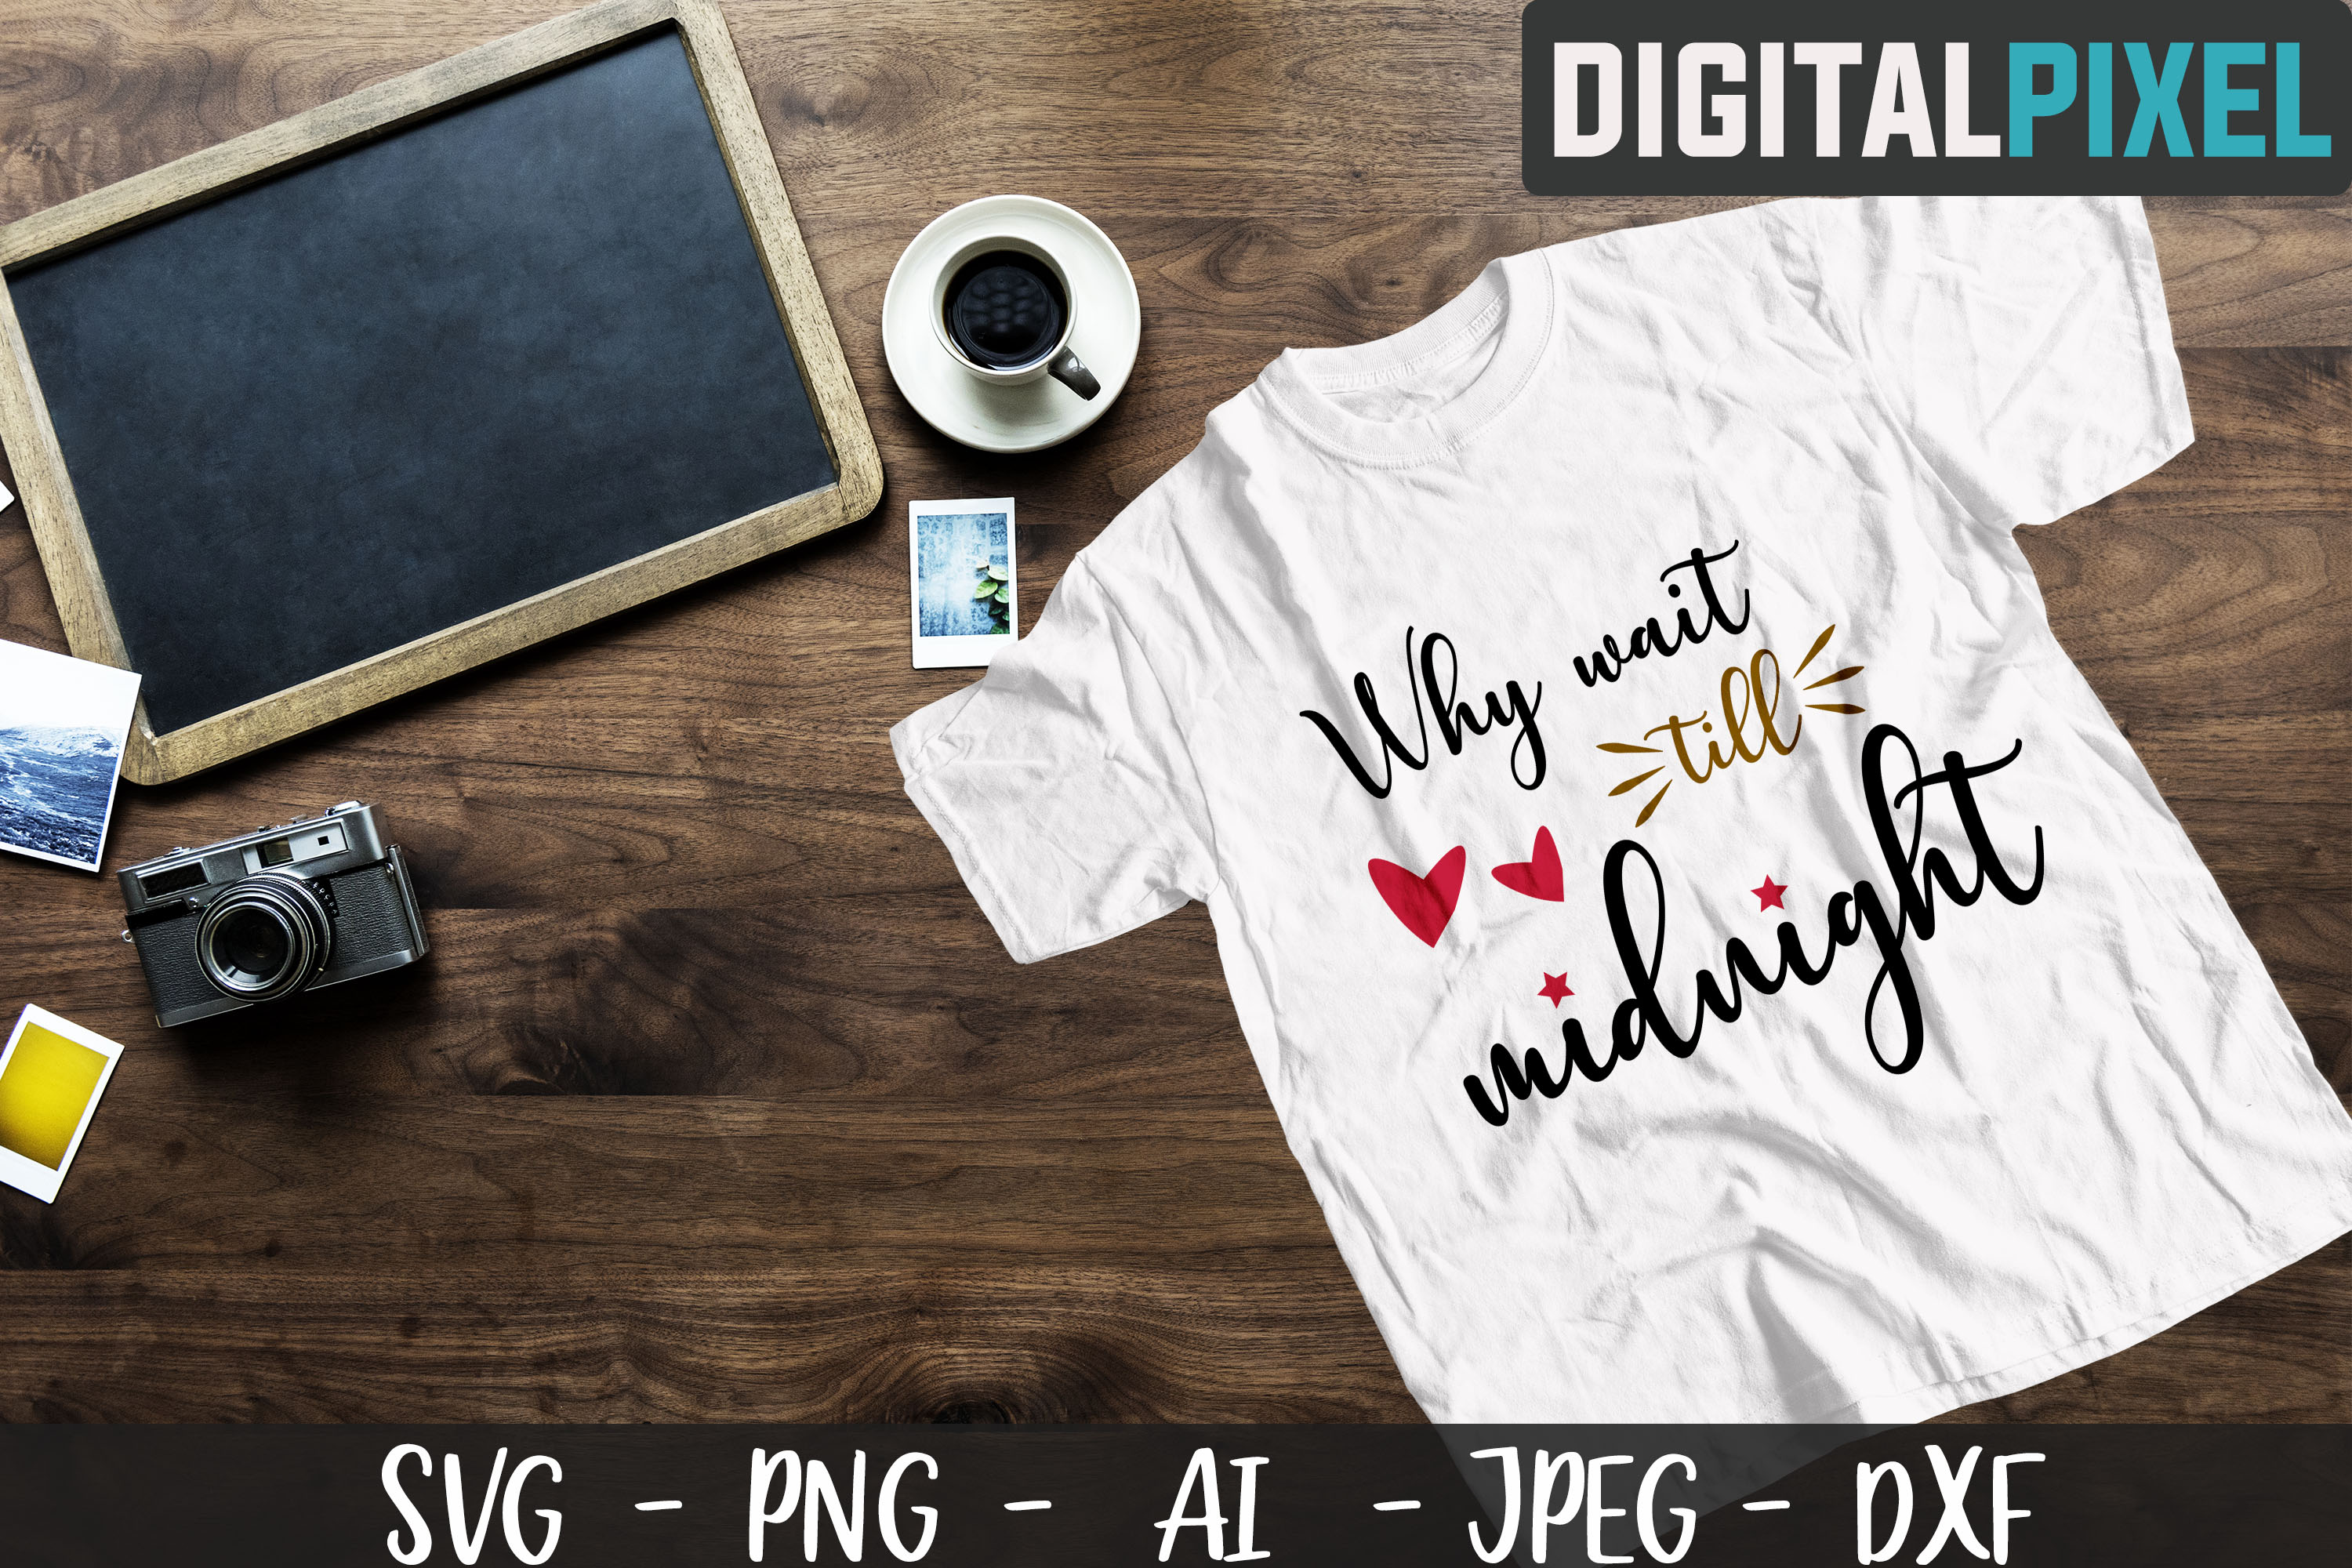 Why wait till midnight SVG PNG DXF Circut Cut Crafters SVG example image 1